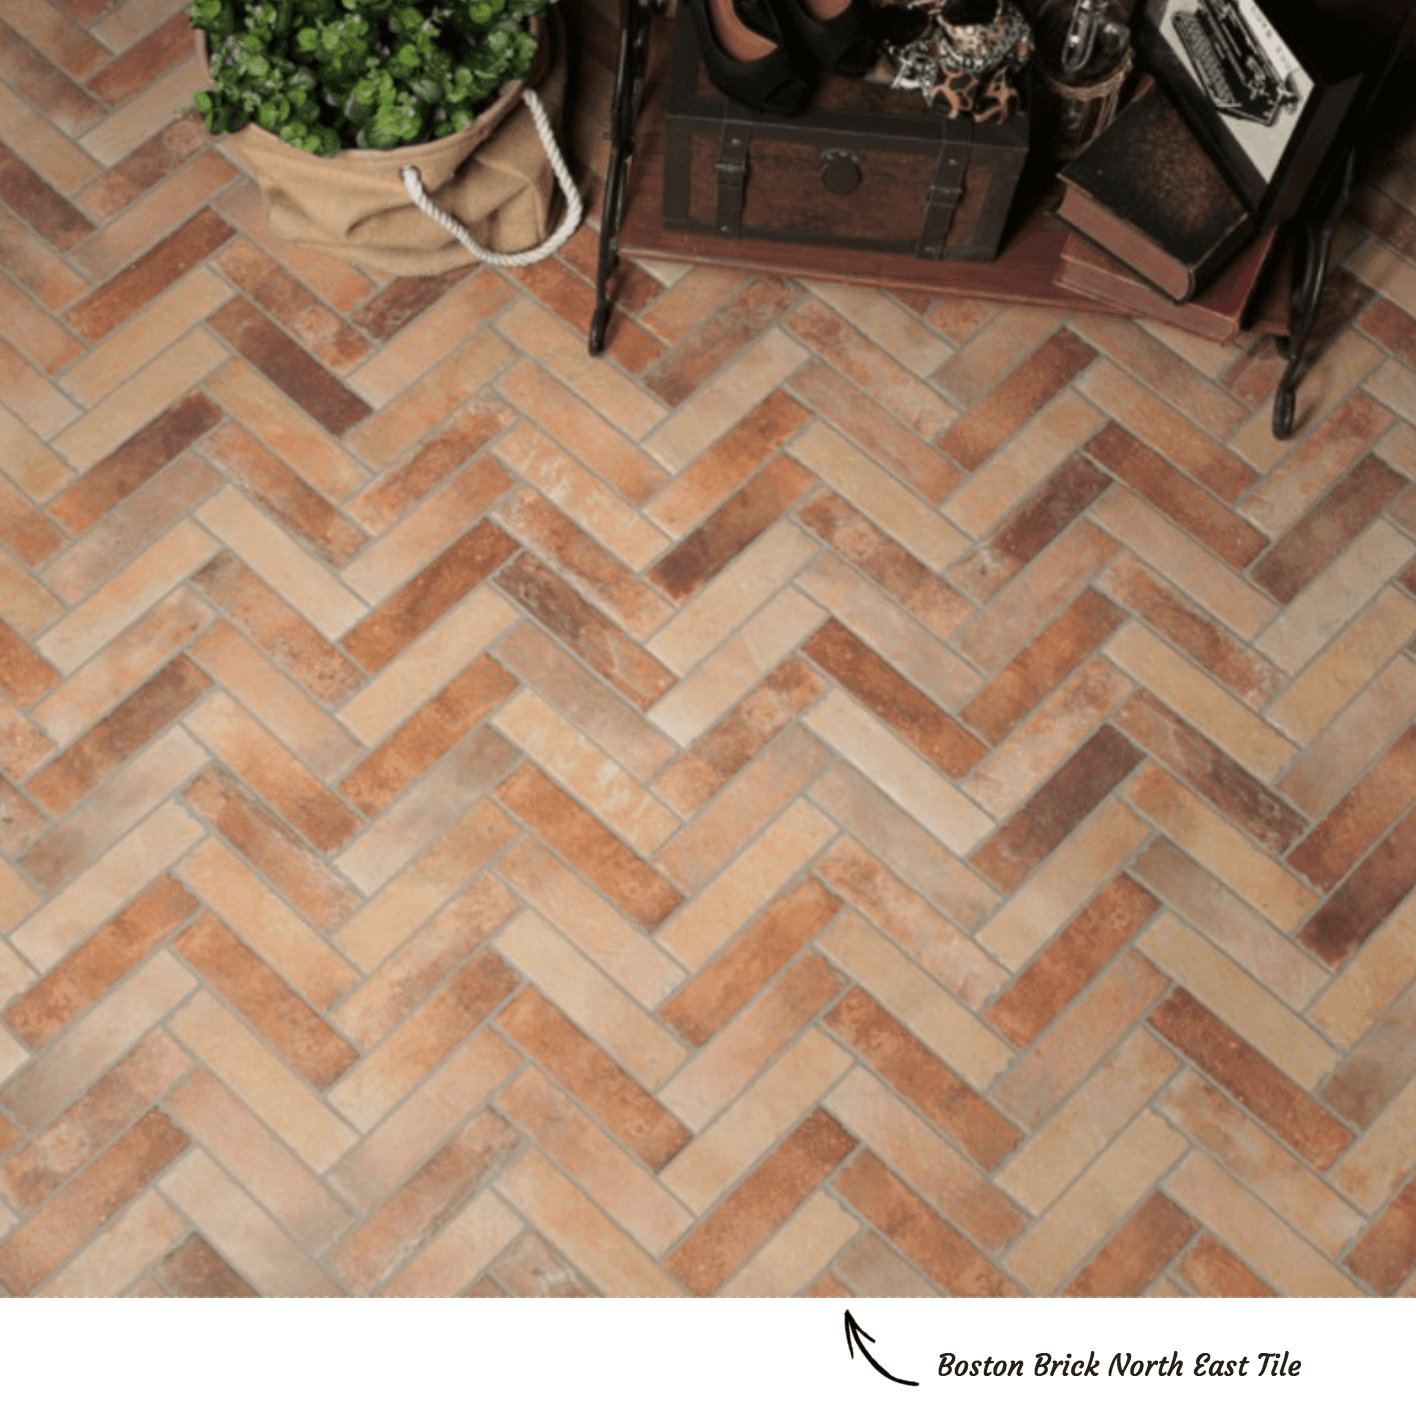 Herringbone Tile Pattern Example